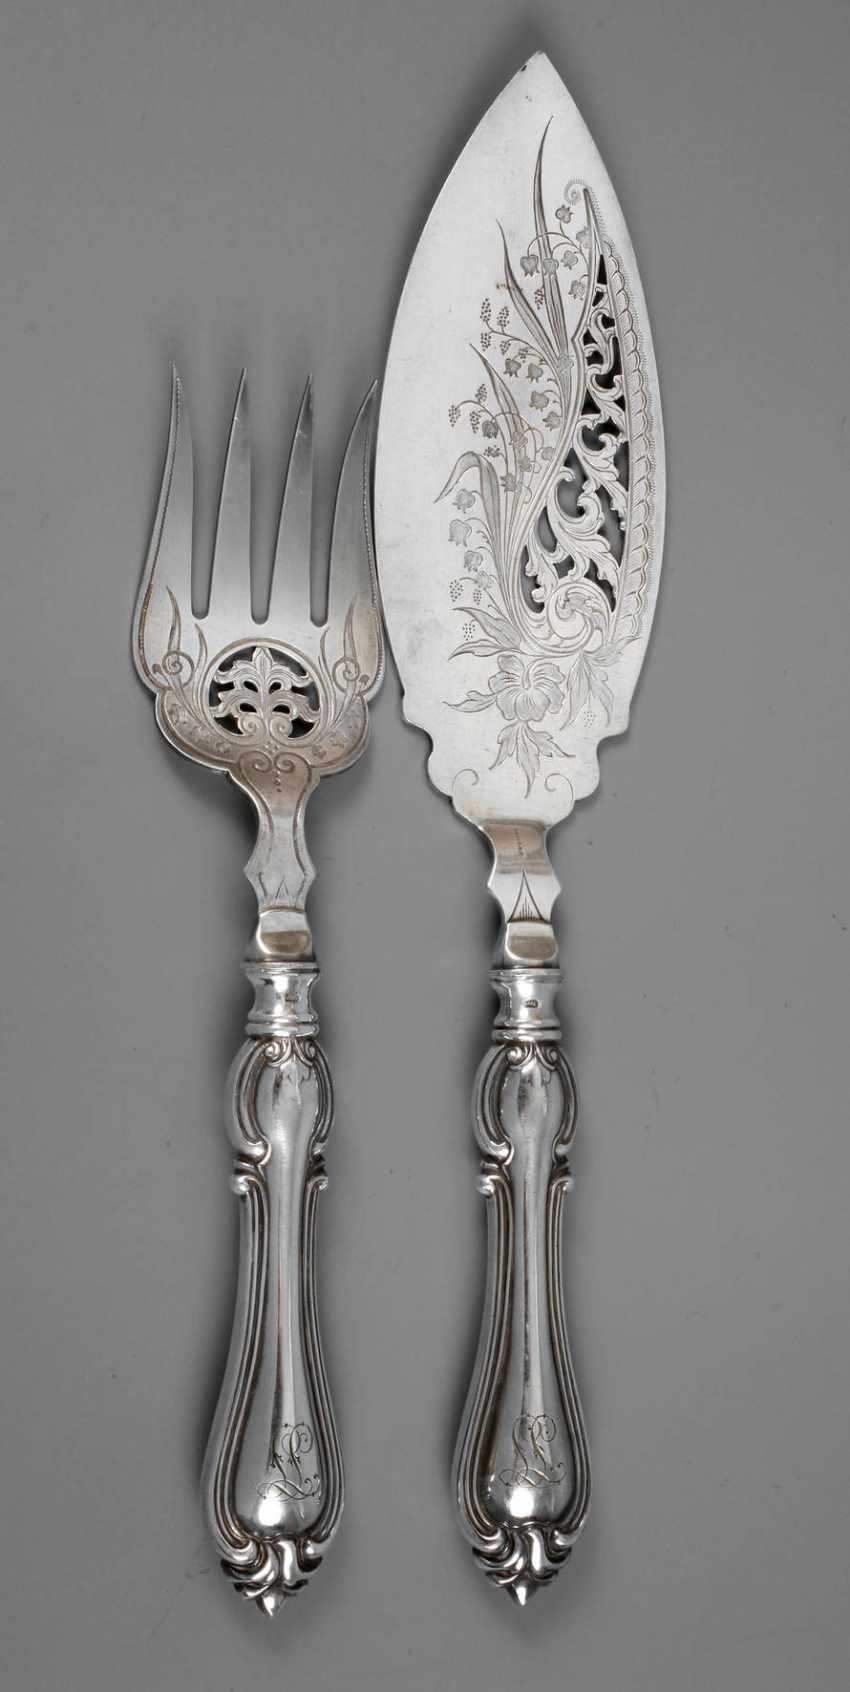 Lot 4424 Fish Serving Cutlery Historicism From The Auction